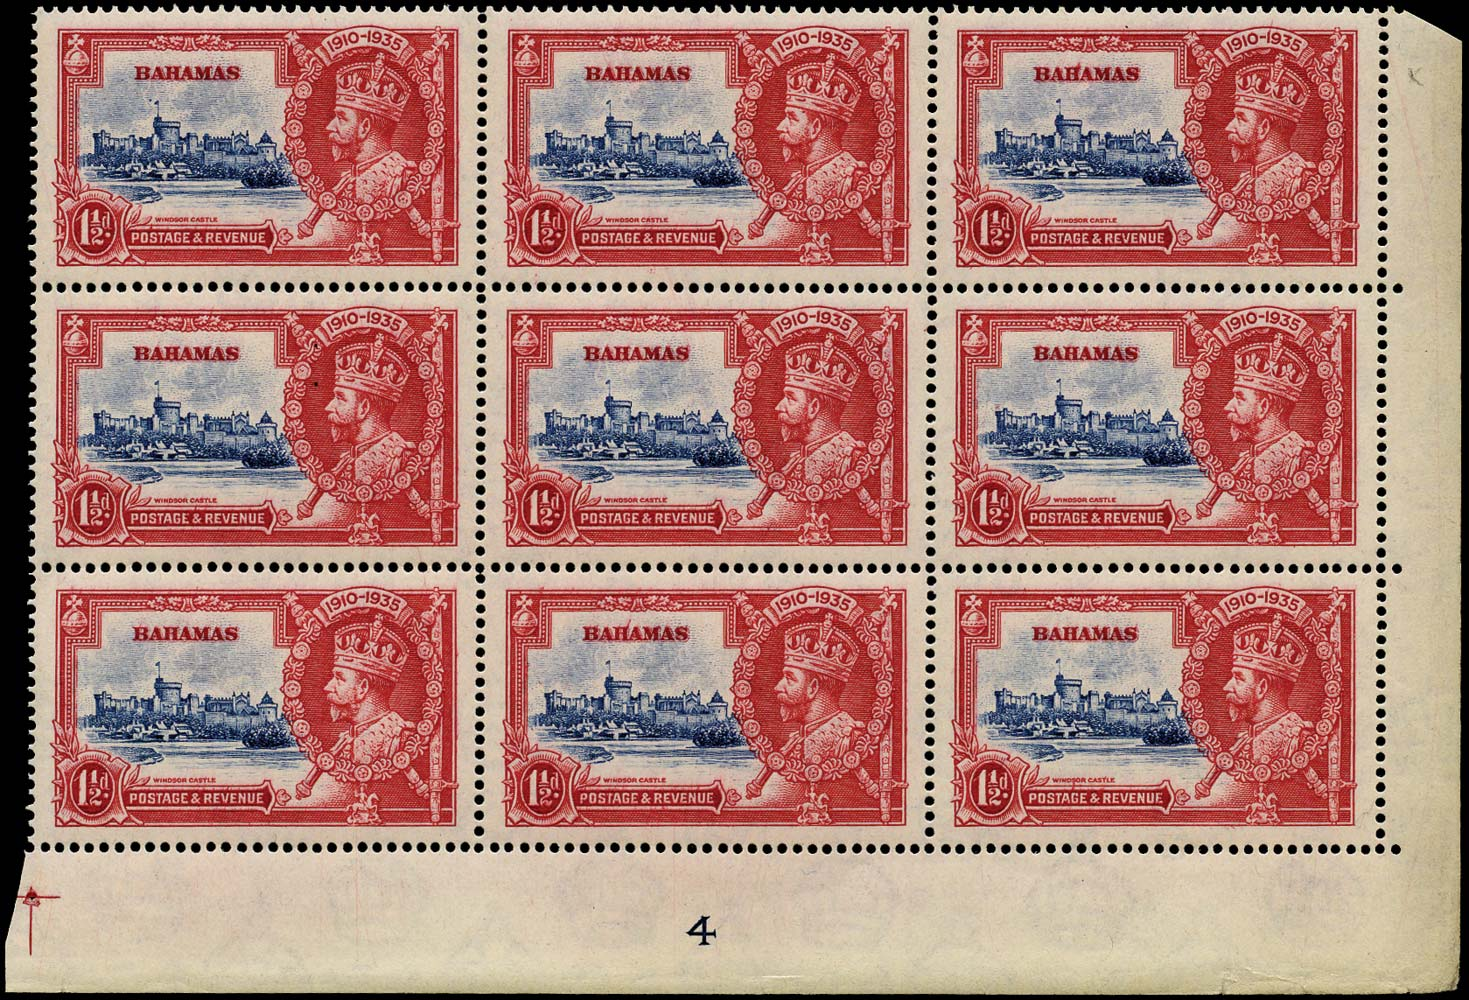 BAHAMAS 1935  SG141h Mint Silver Jubilee 1½d Dot by flagstaff unmounted